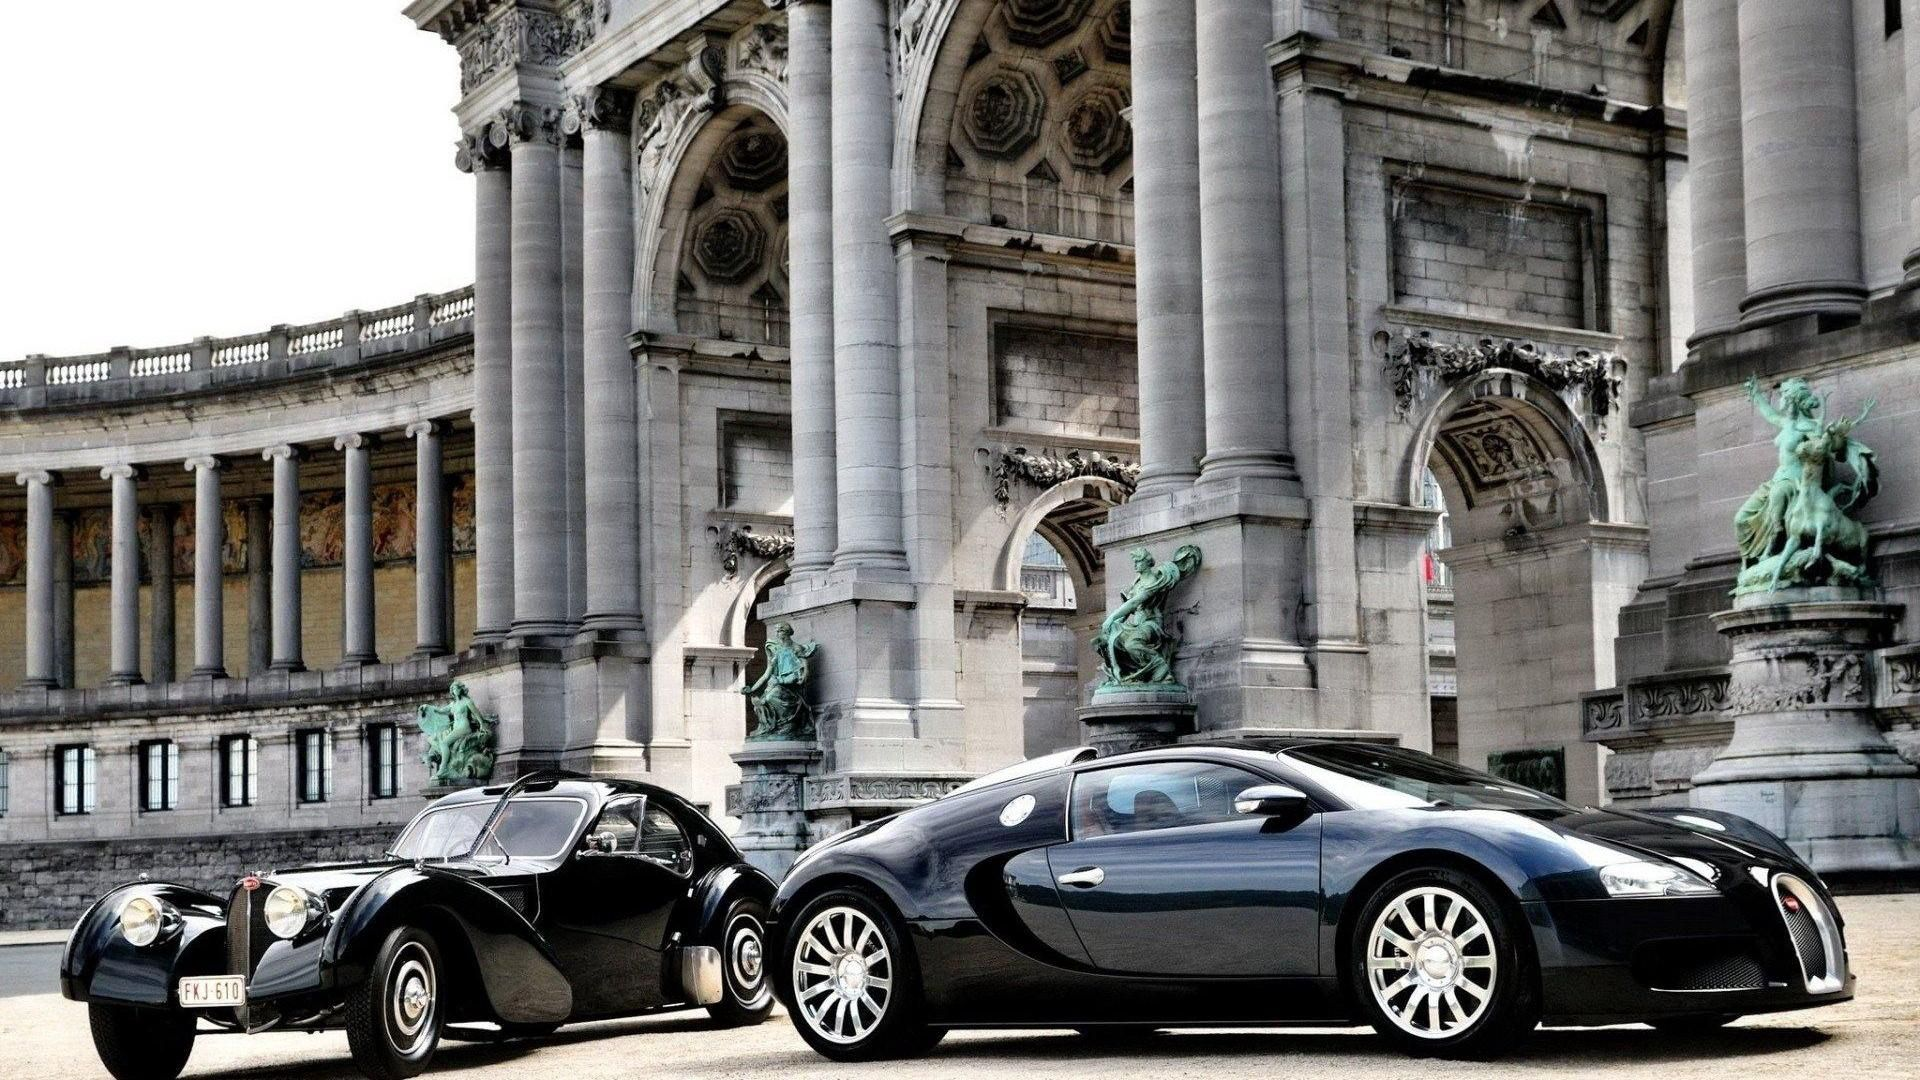 89238 download wallpaper Bugatti, Cars, Building, Construction, Veyron, Luxury, Parked screensavers and pictures for free